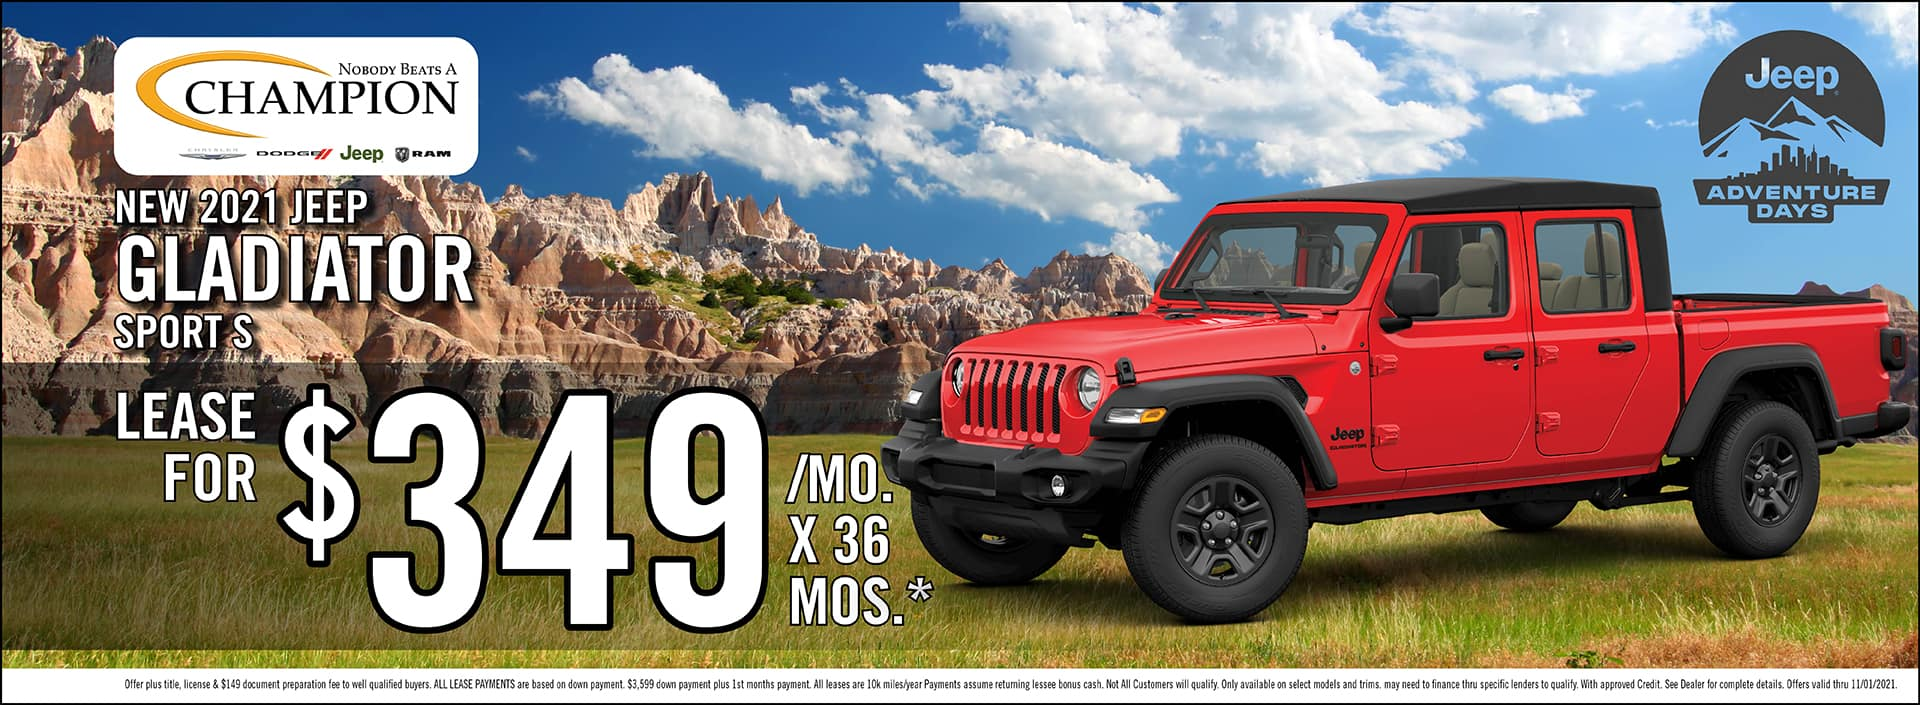 New 2021 Jeep Gladiator Sport S Lease Offer